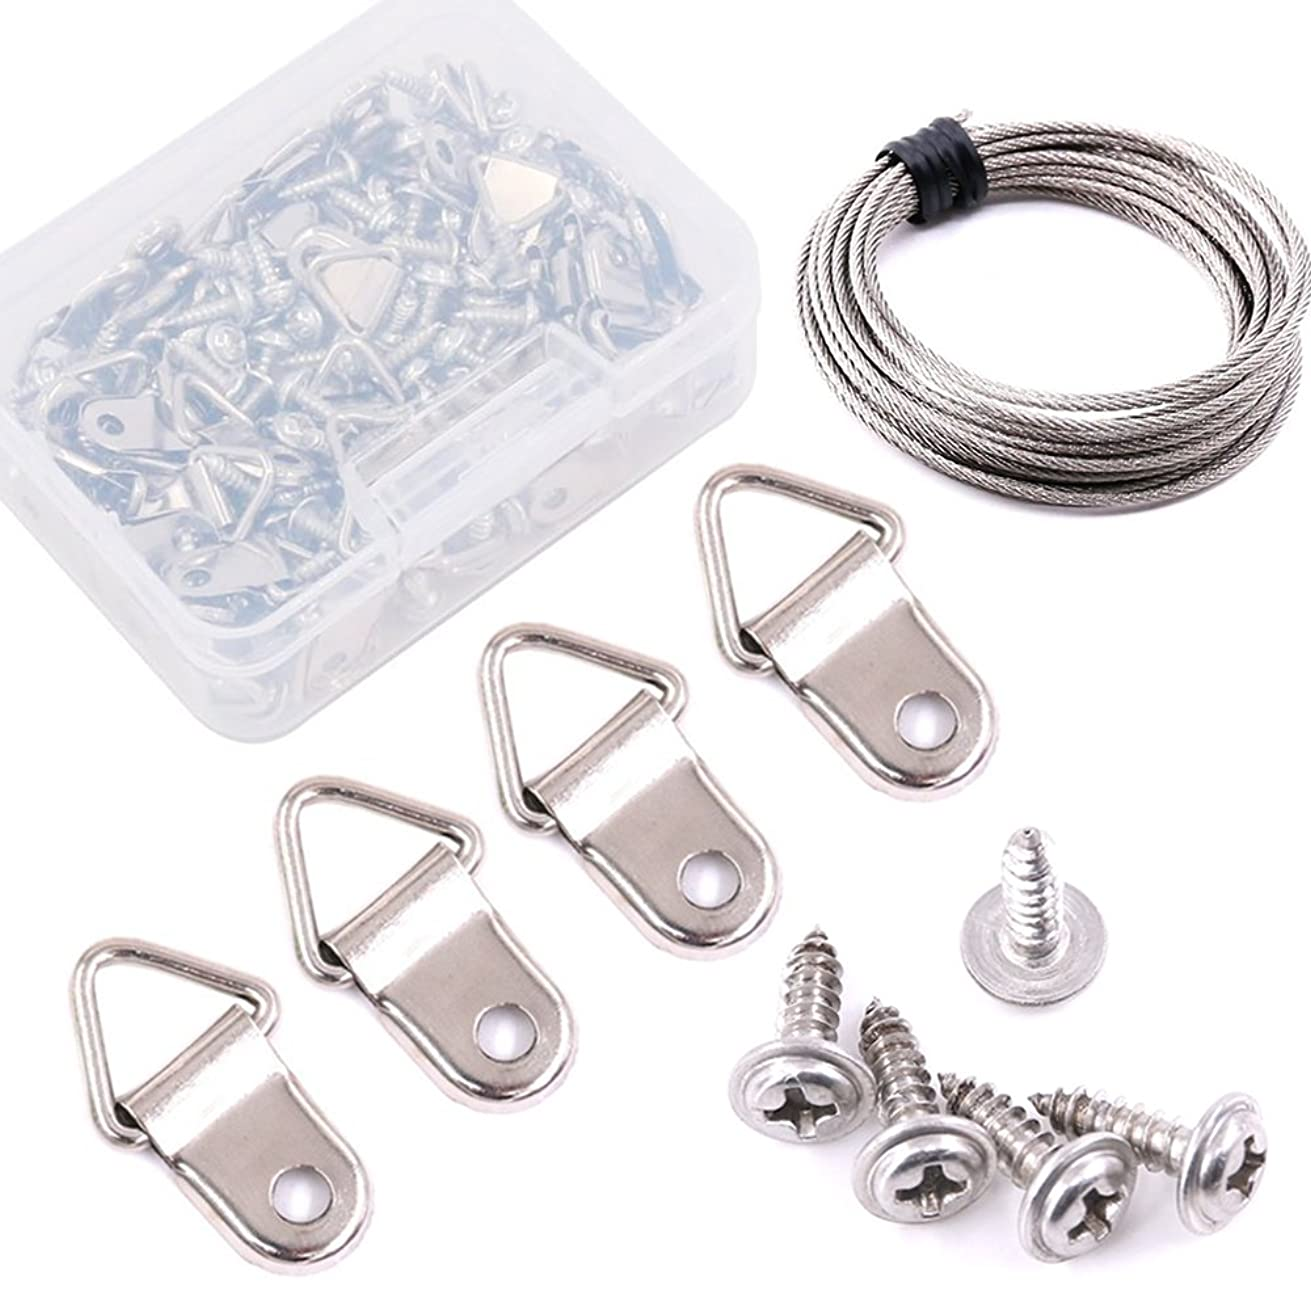 Swpeet 110 Pack Triangle Ring Picture Hangers with Picture Hanging Wire, Nail Non-Trace Frame Hangers with Screws for Home Decoration